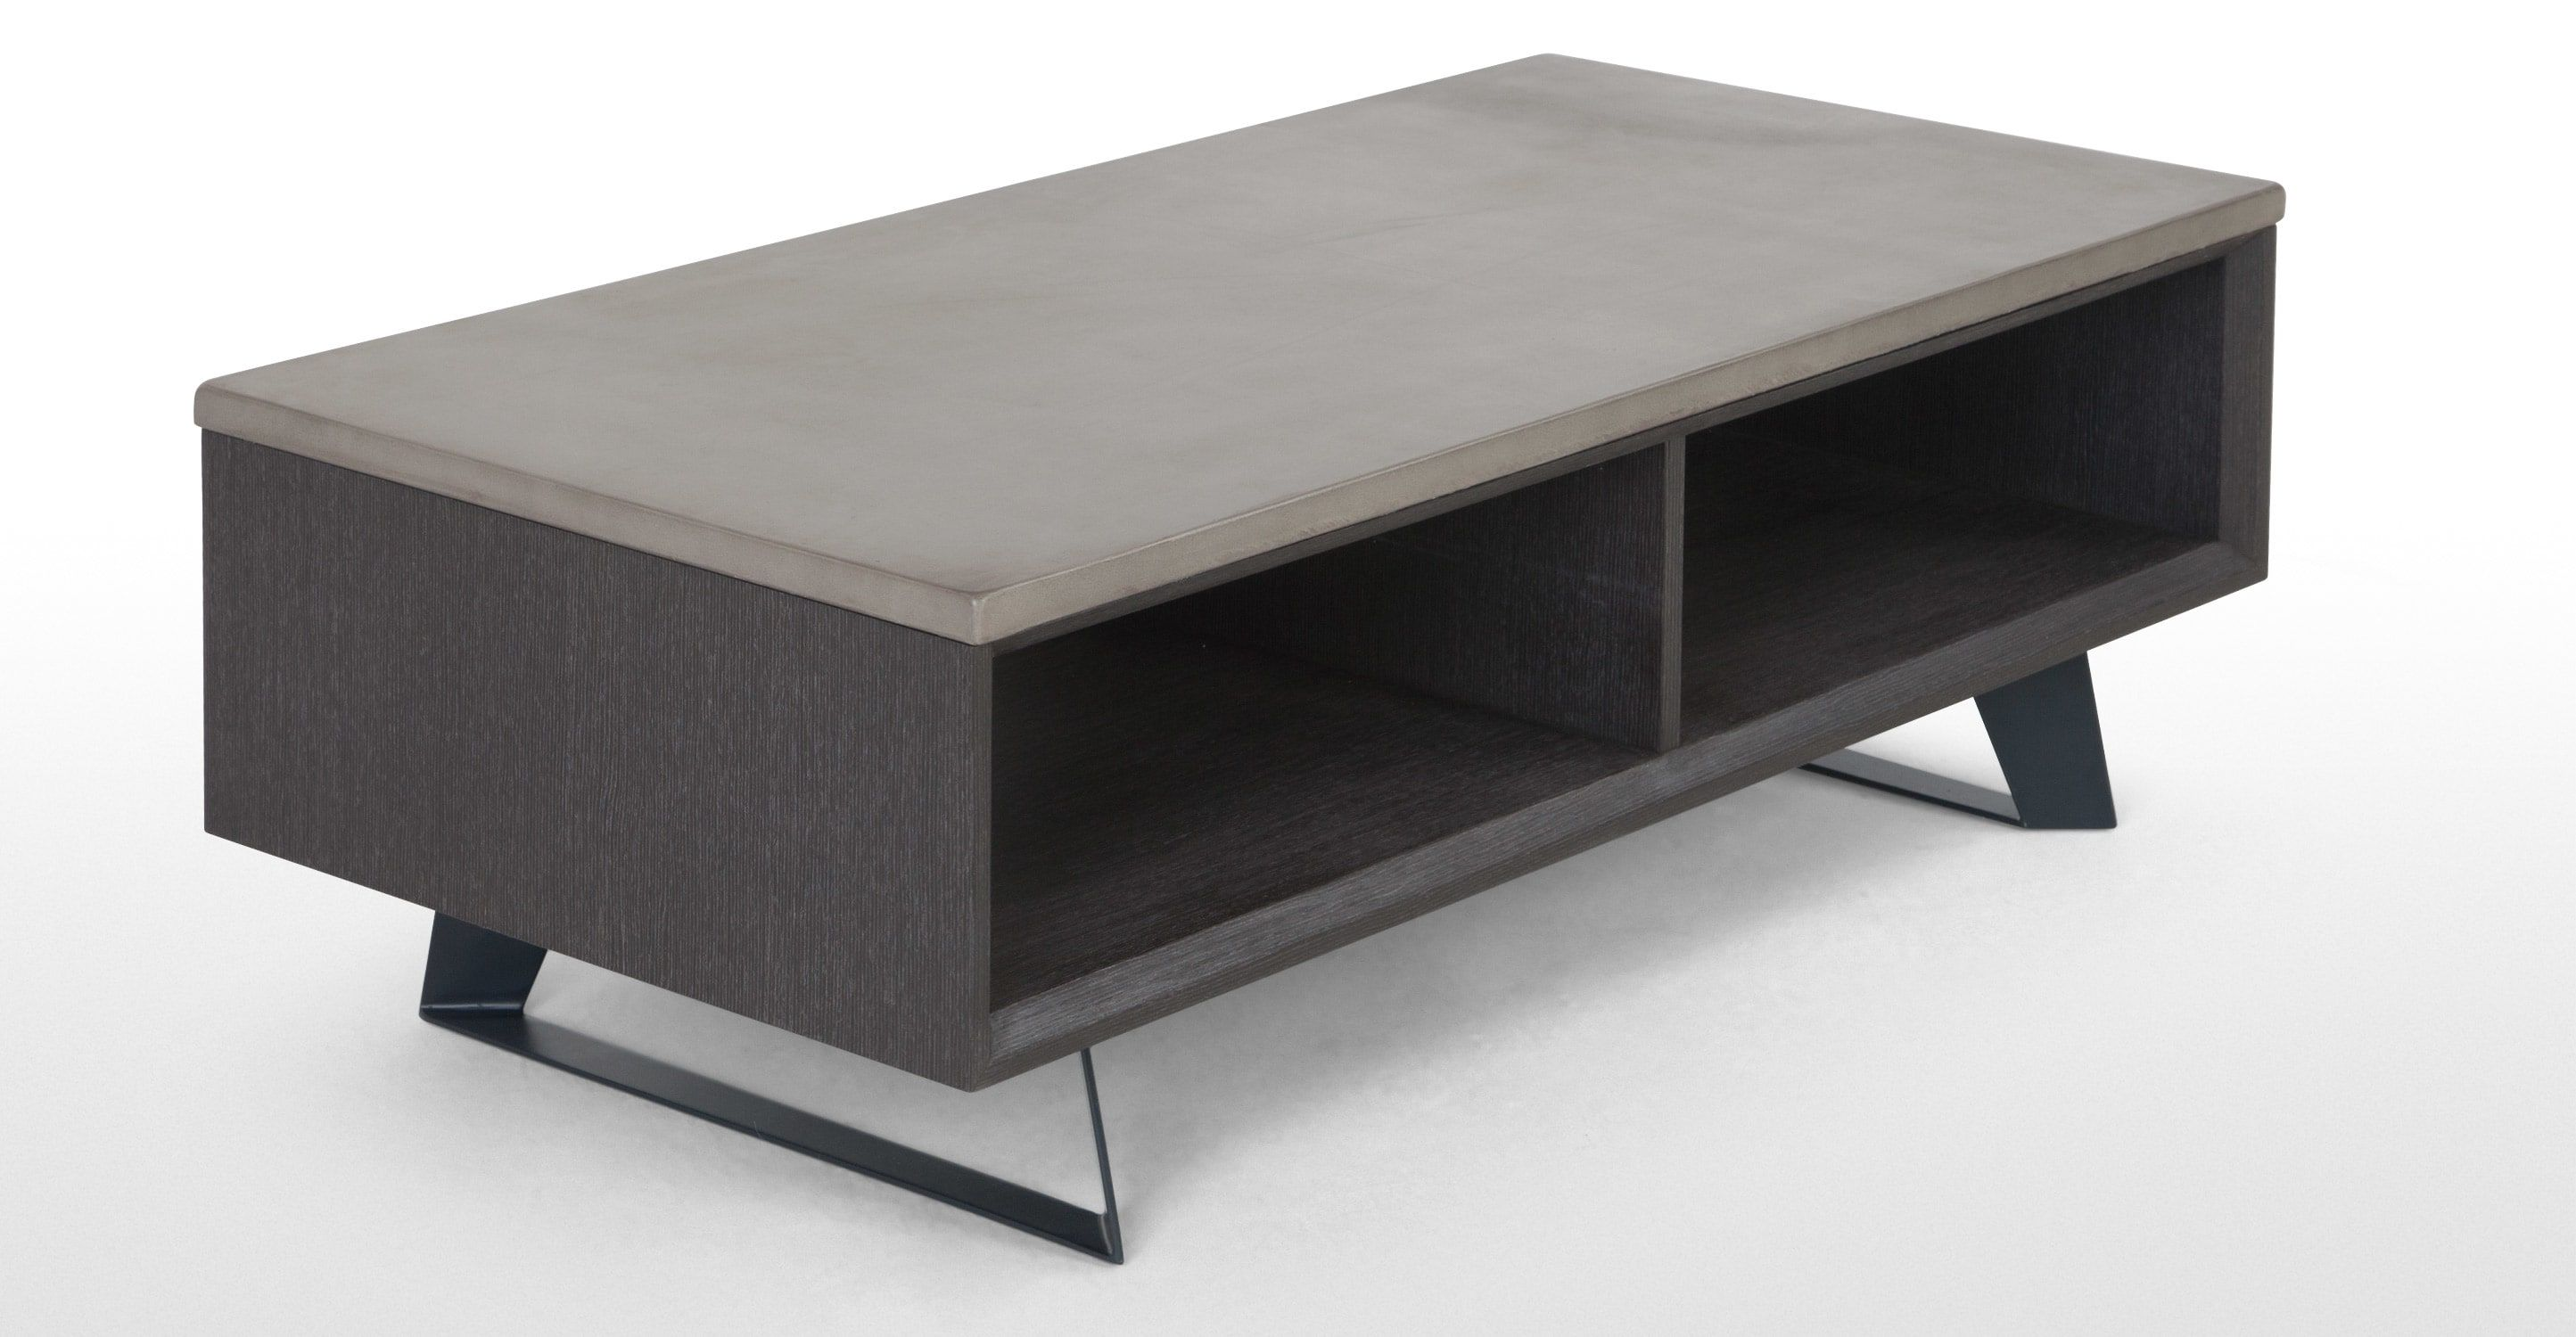 Boone Coffee Table With Storage Concrete resin top from Made